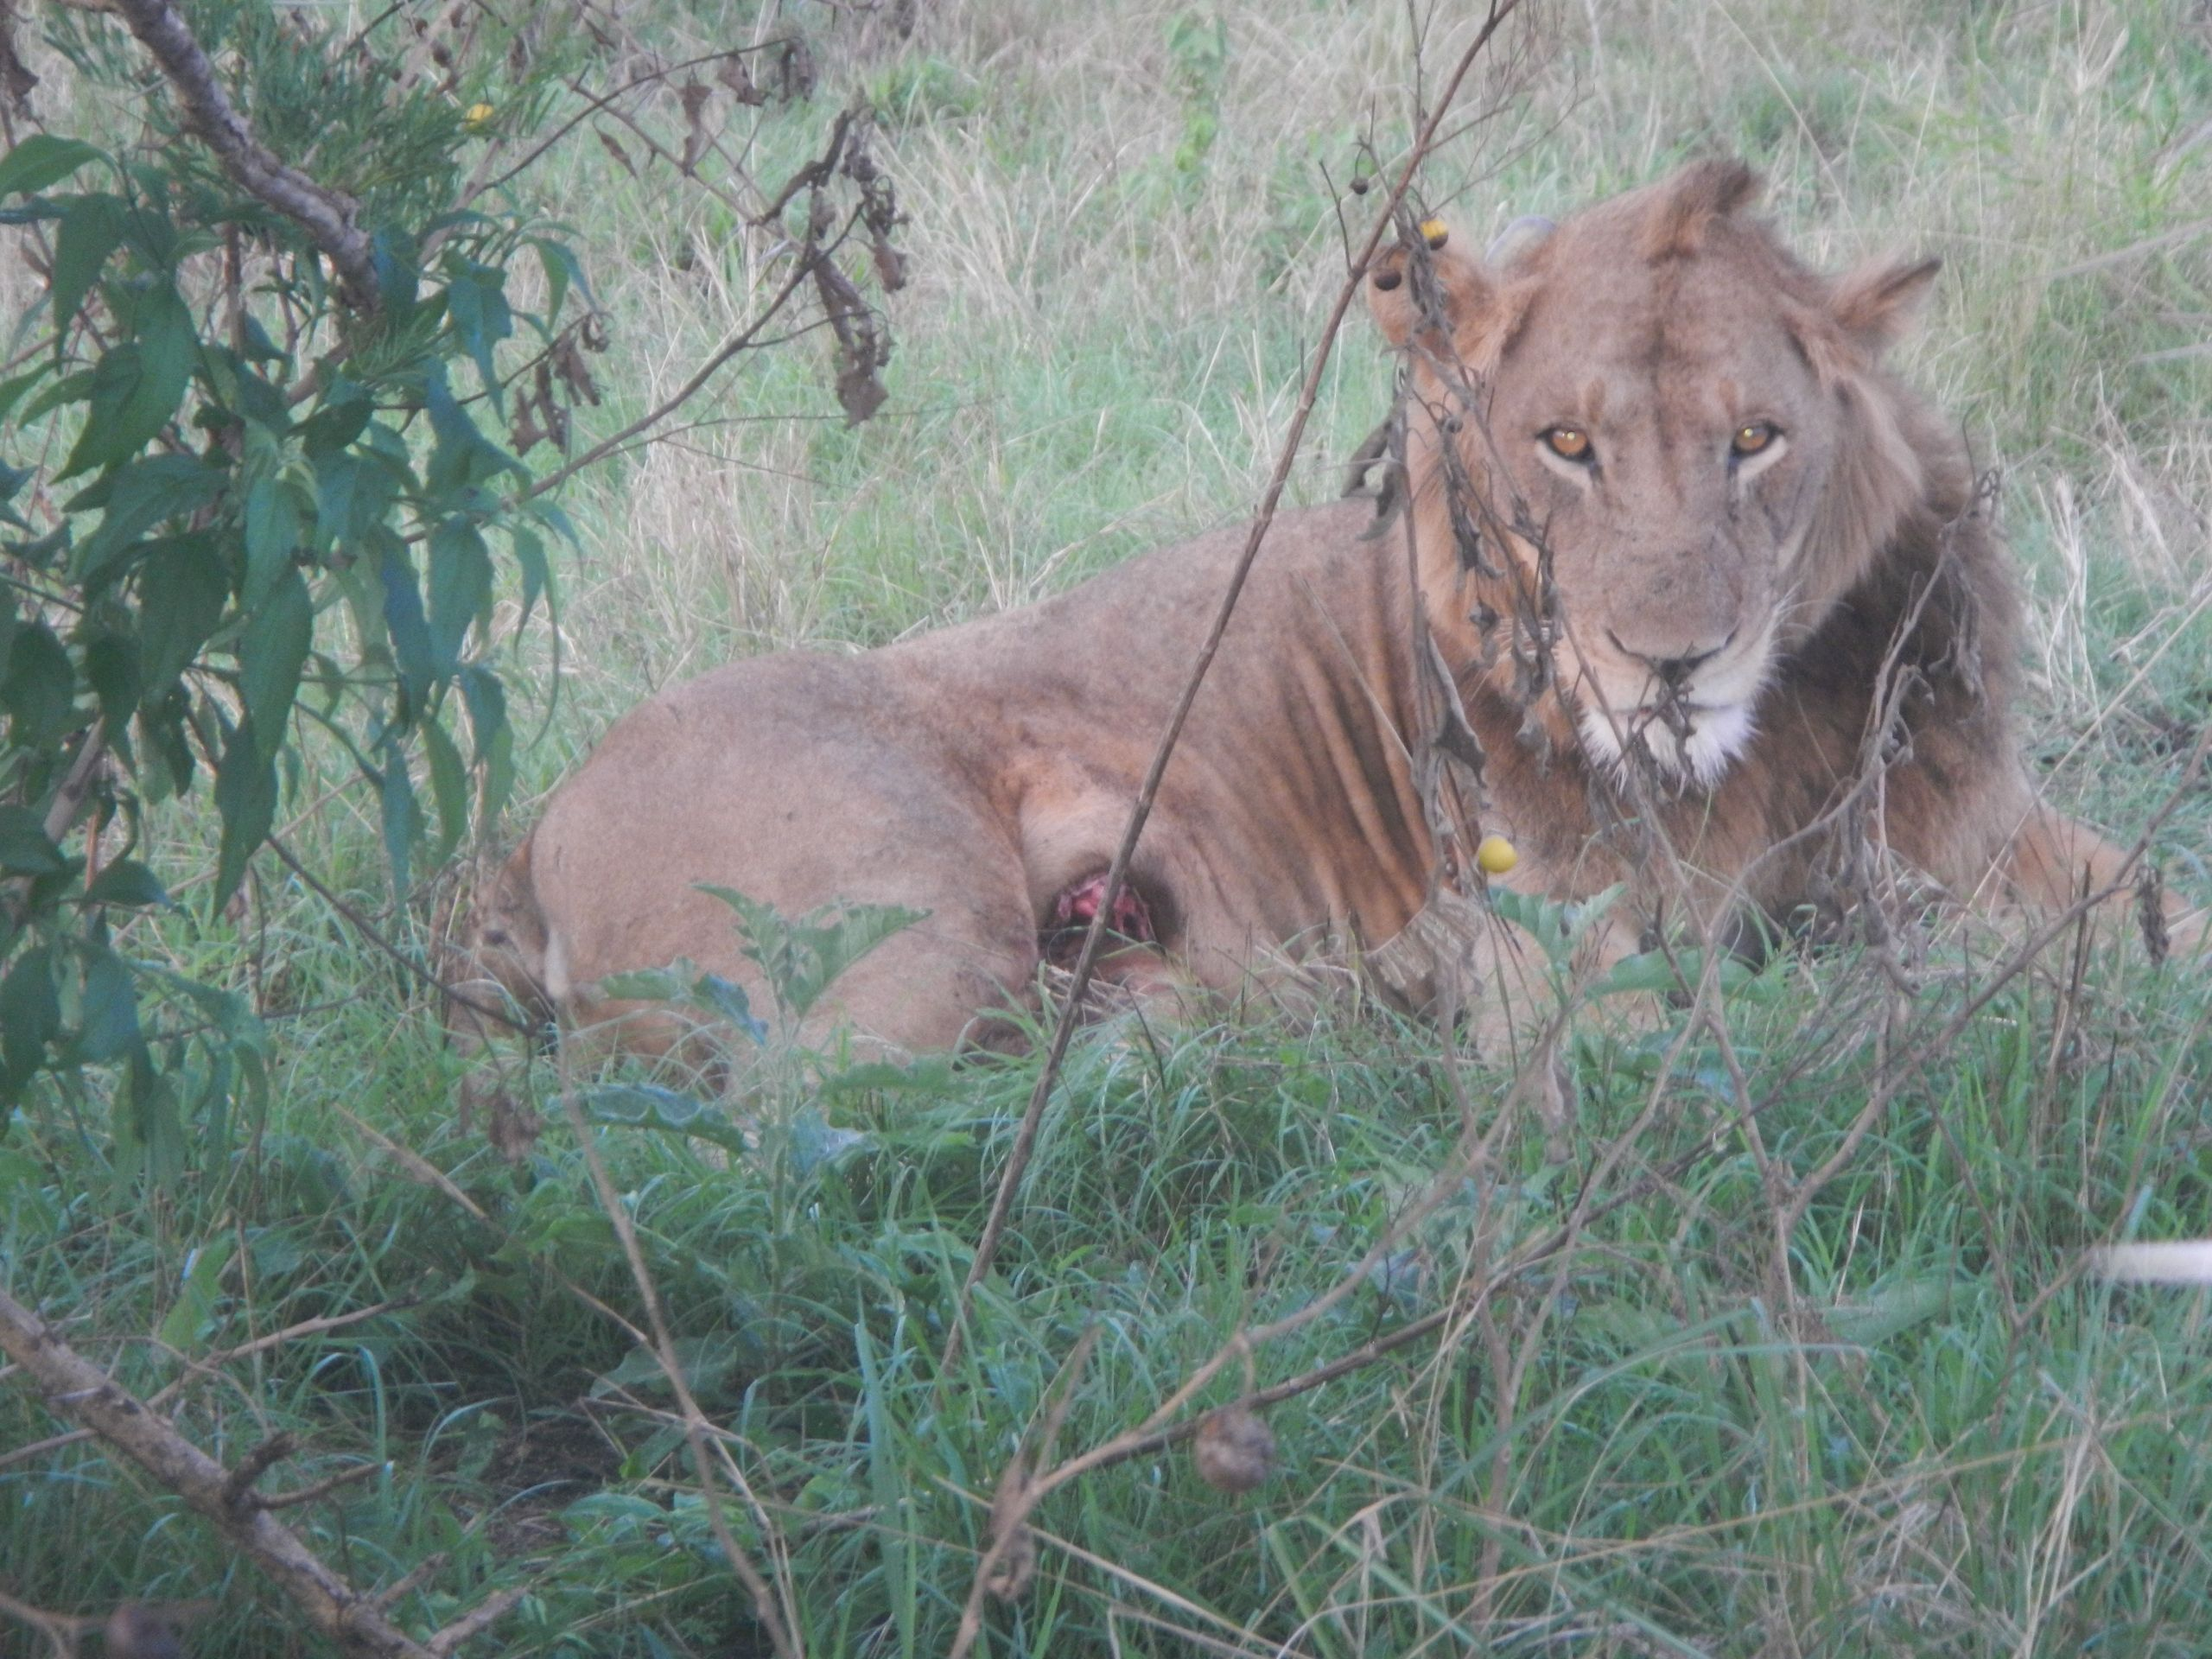 snares-pose-a-grave-threat-to-lions-in-africa-today